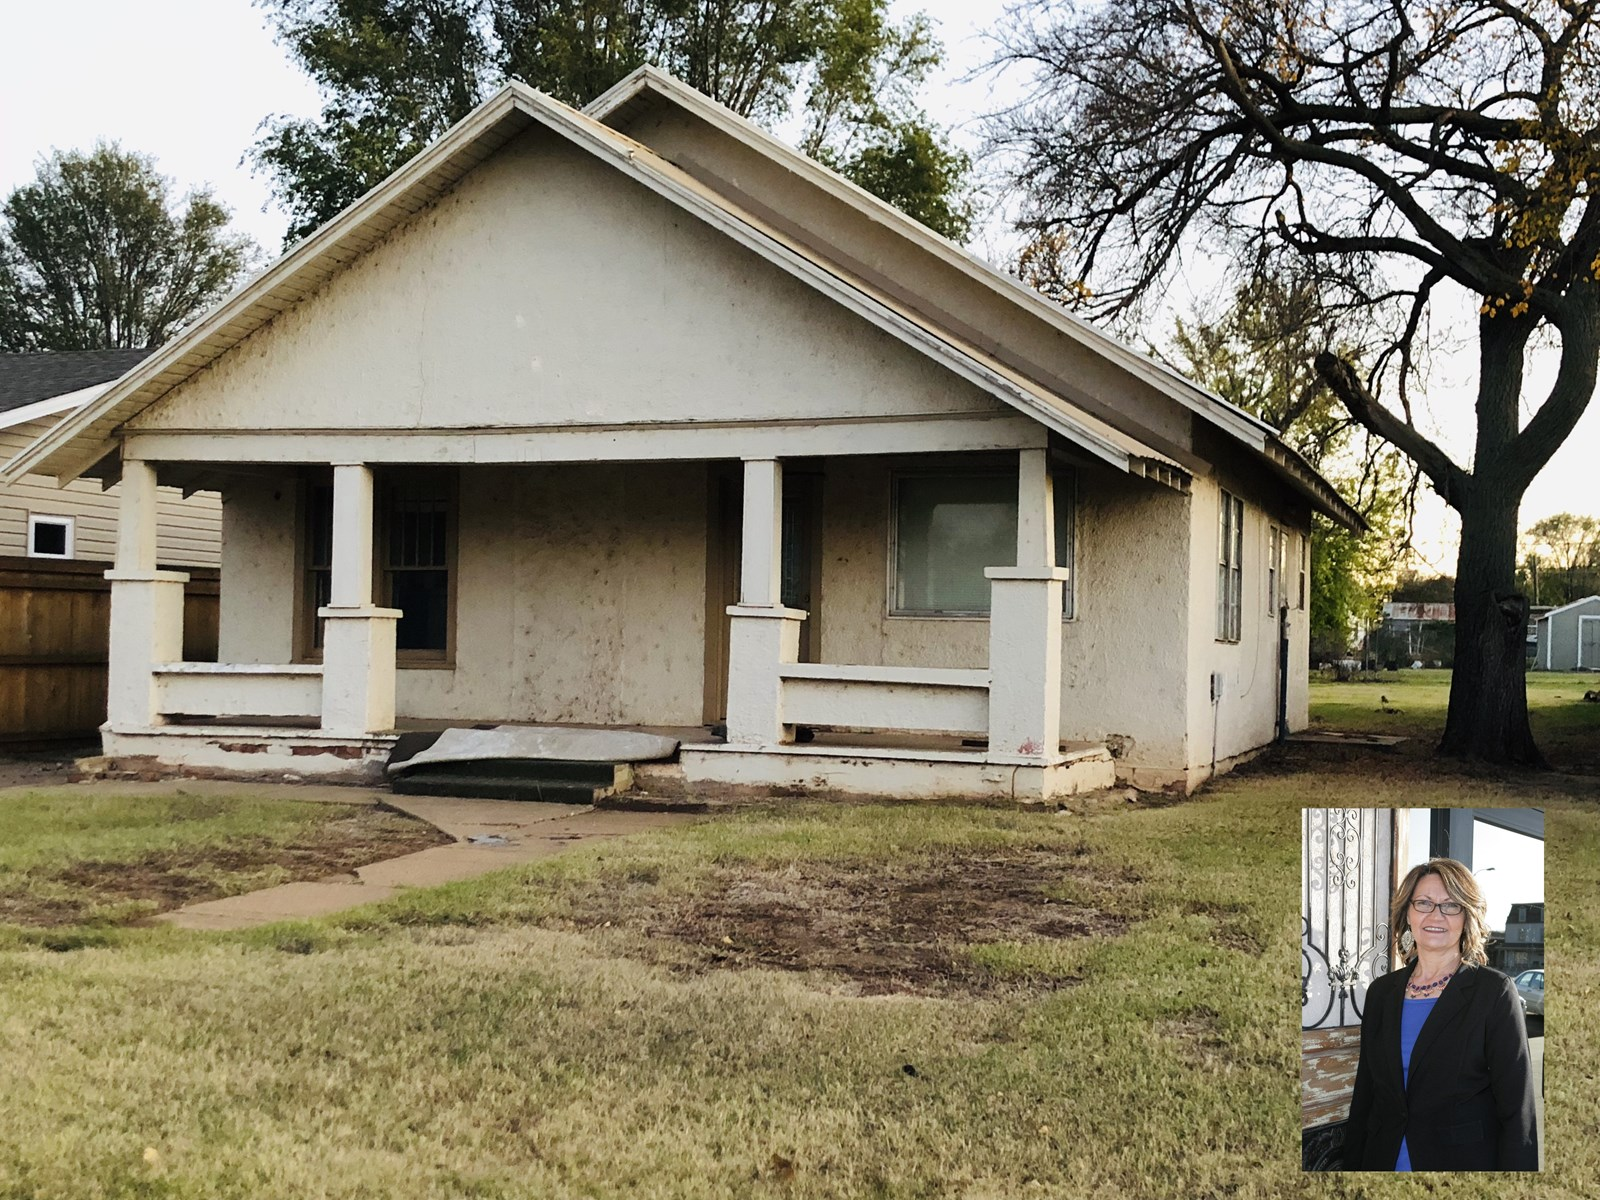 2 Bedroom Home for Sale in Alva, OK (Woods County)